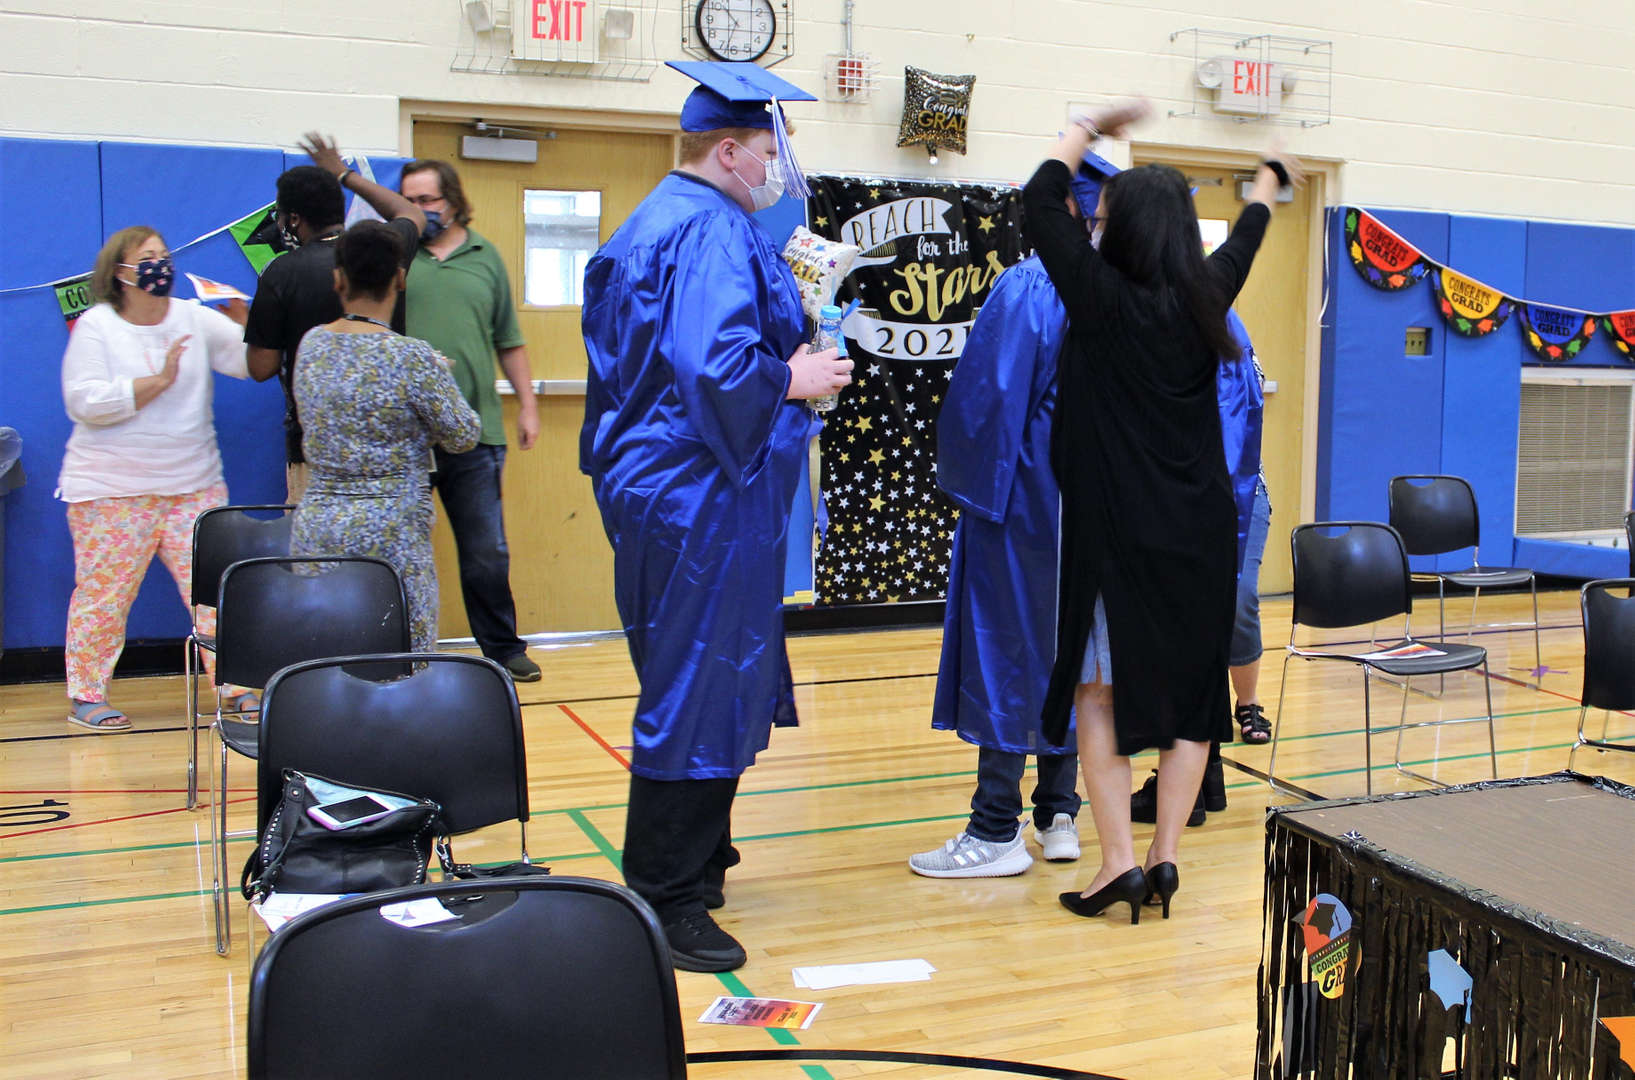 Graduates process out of the auditorium with teacher Tiziana DeMasi after the ceremony.